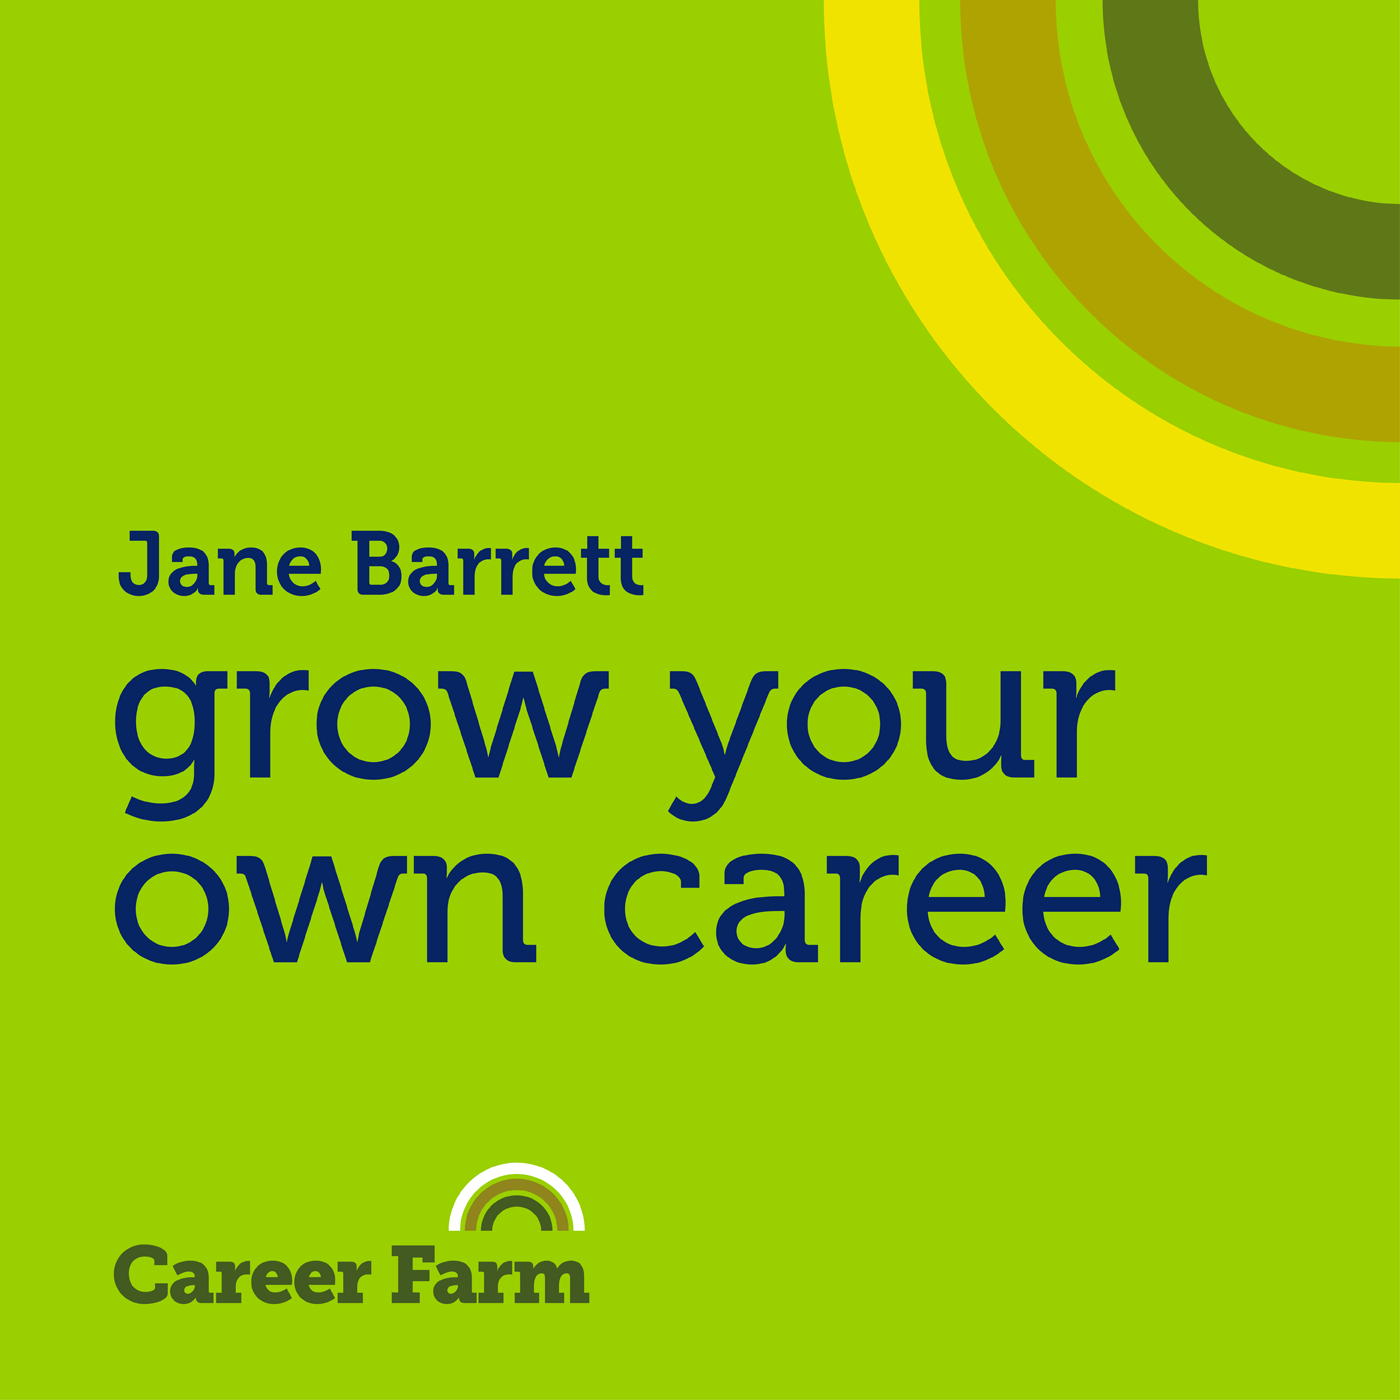 The Career Farm | Take the fast track to the career you want | with Jane Barrett